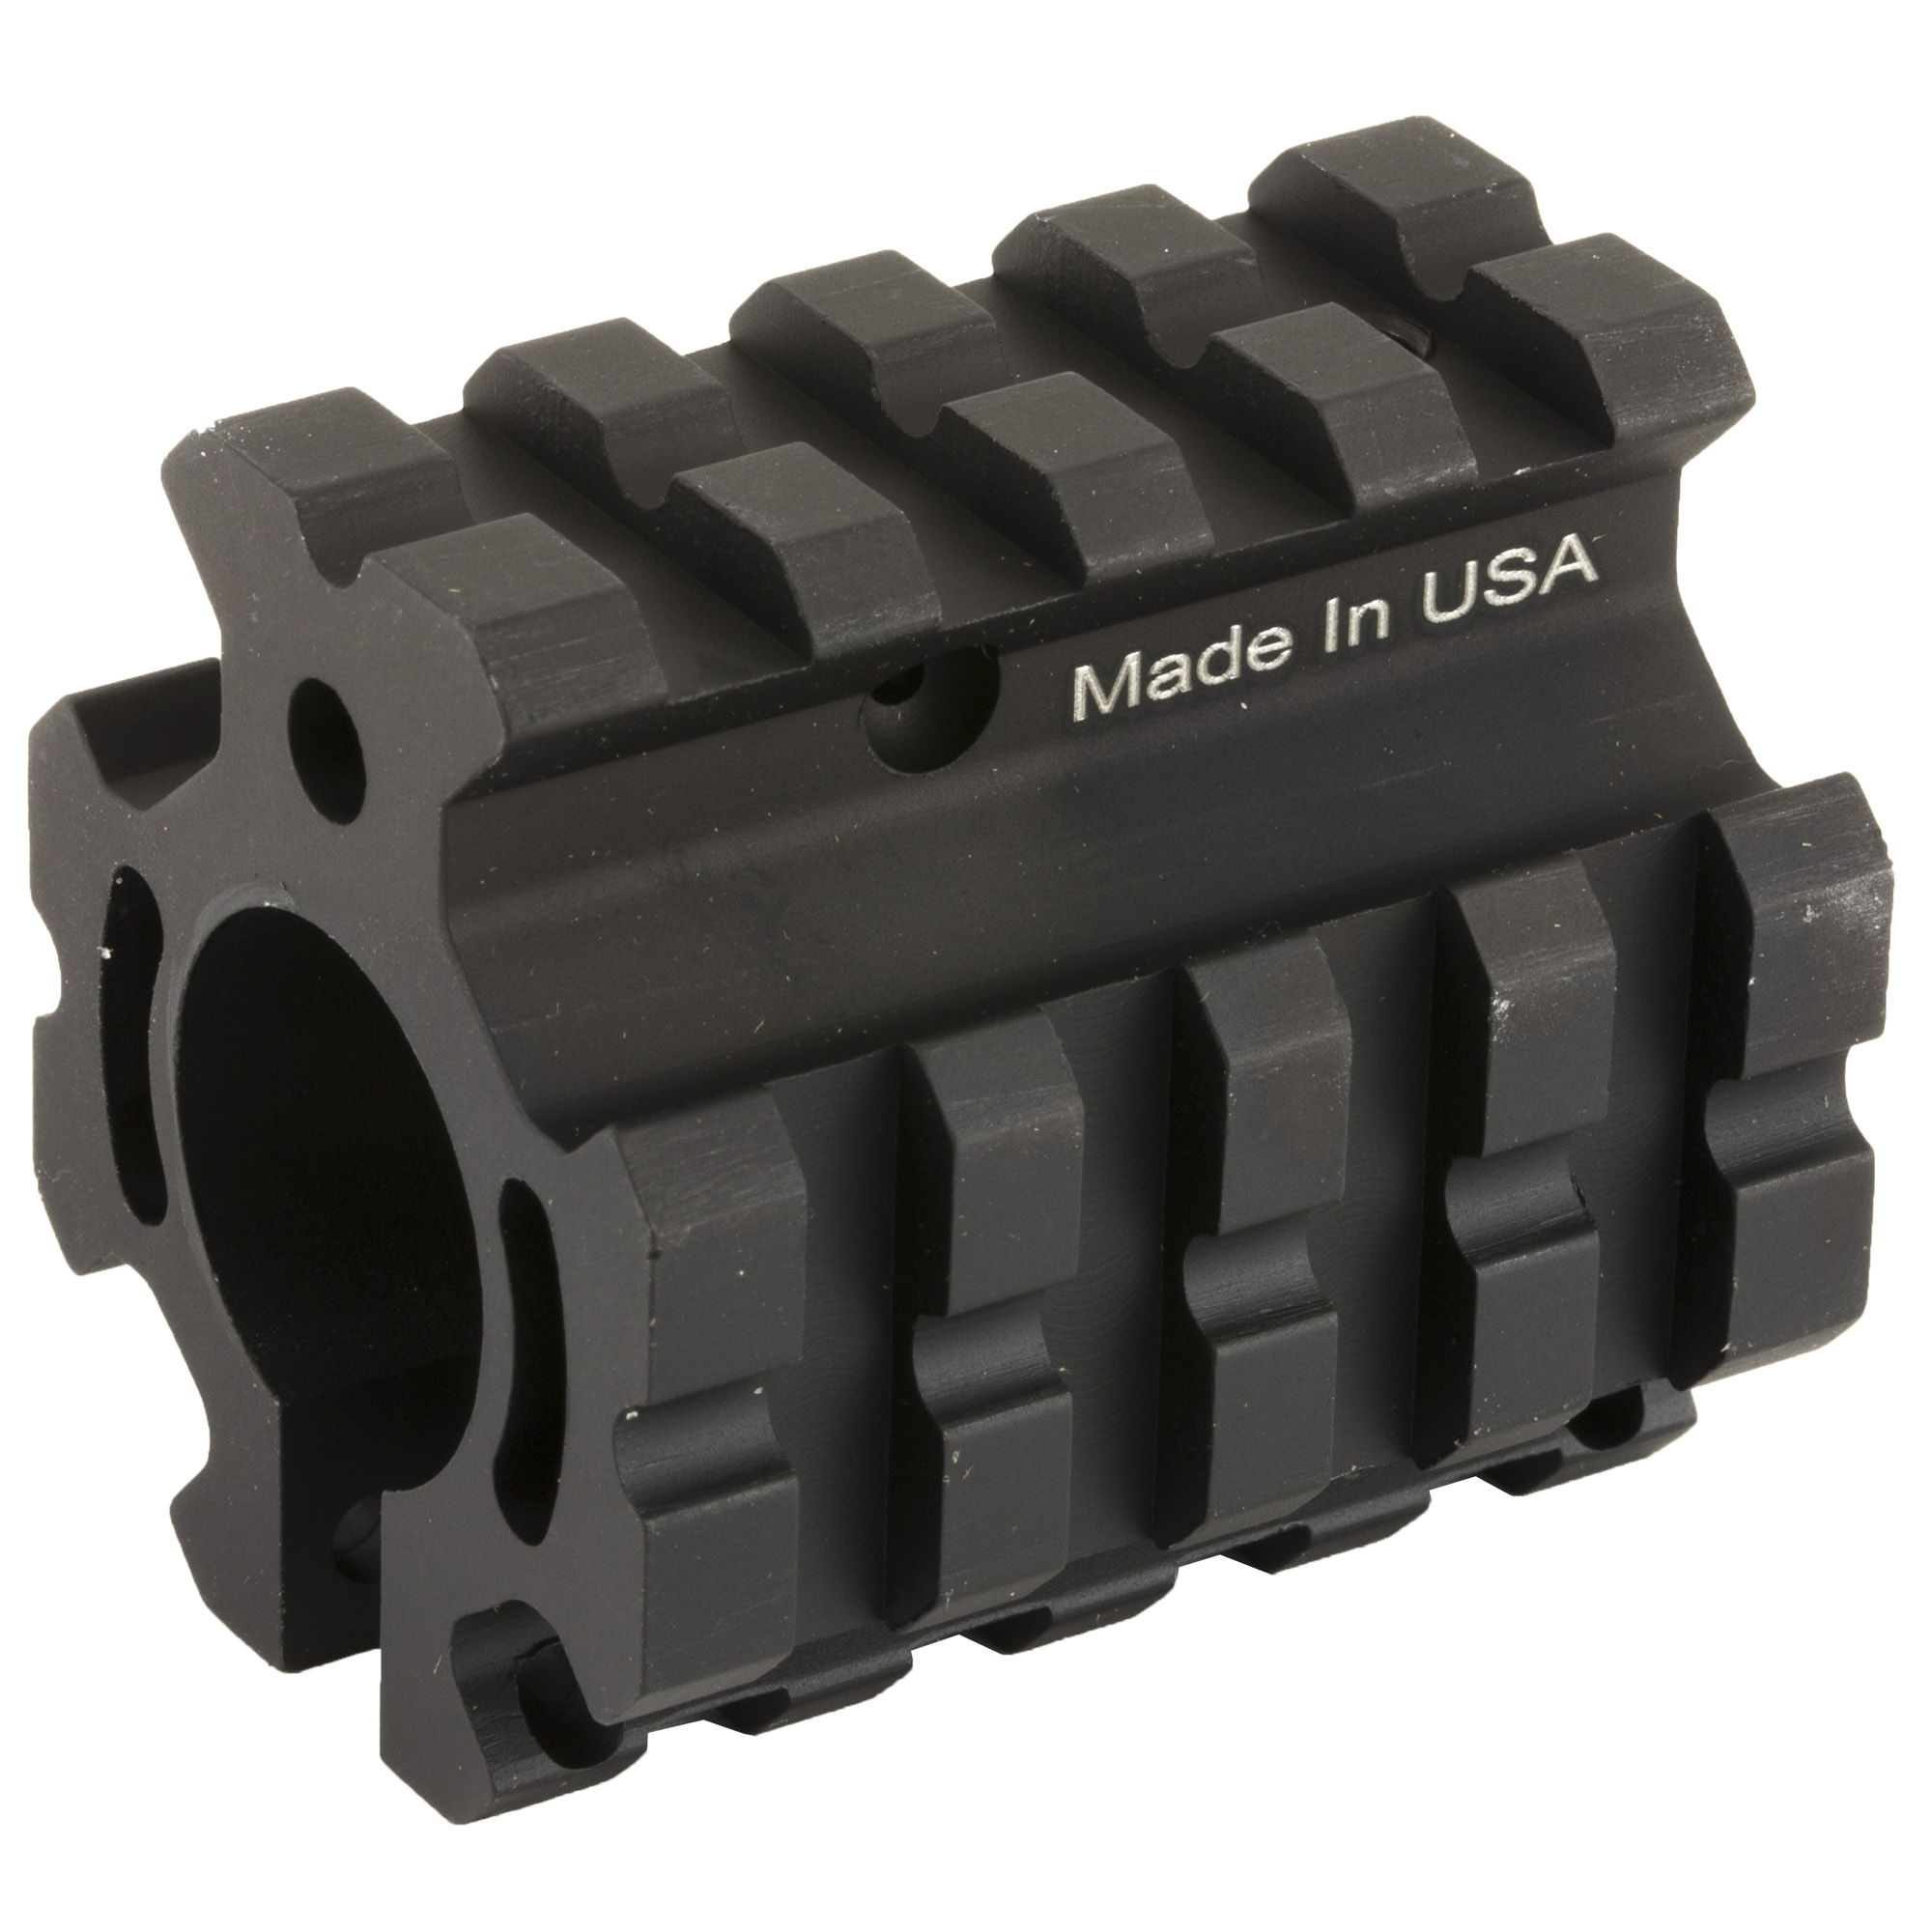 The UTG Pro Quad-Rail Gas Block replaces the A2 front sight and provides 4 Picatinny Rails. It Includes Gas Tube Roll Pin and Locking Screws.